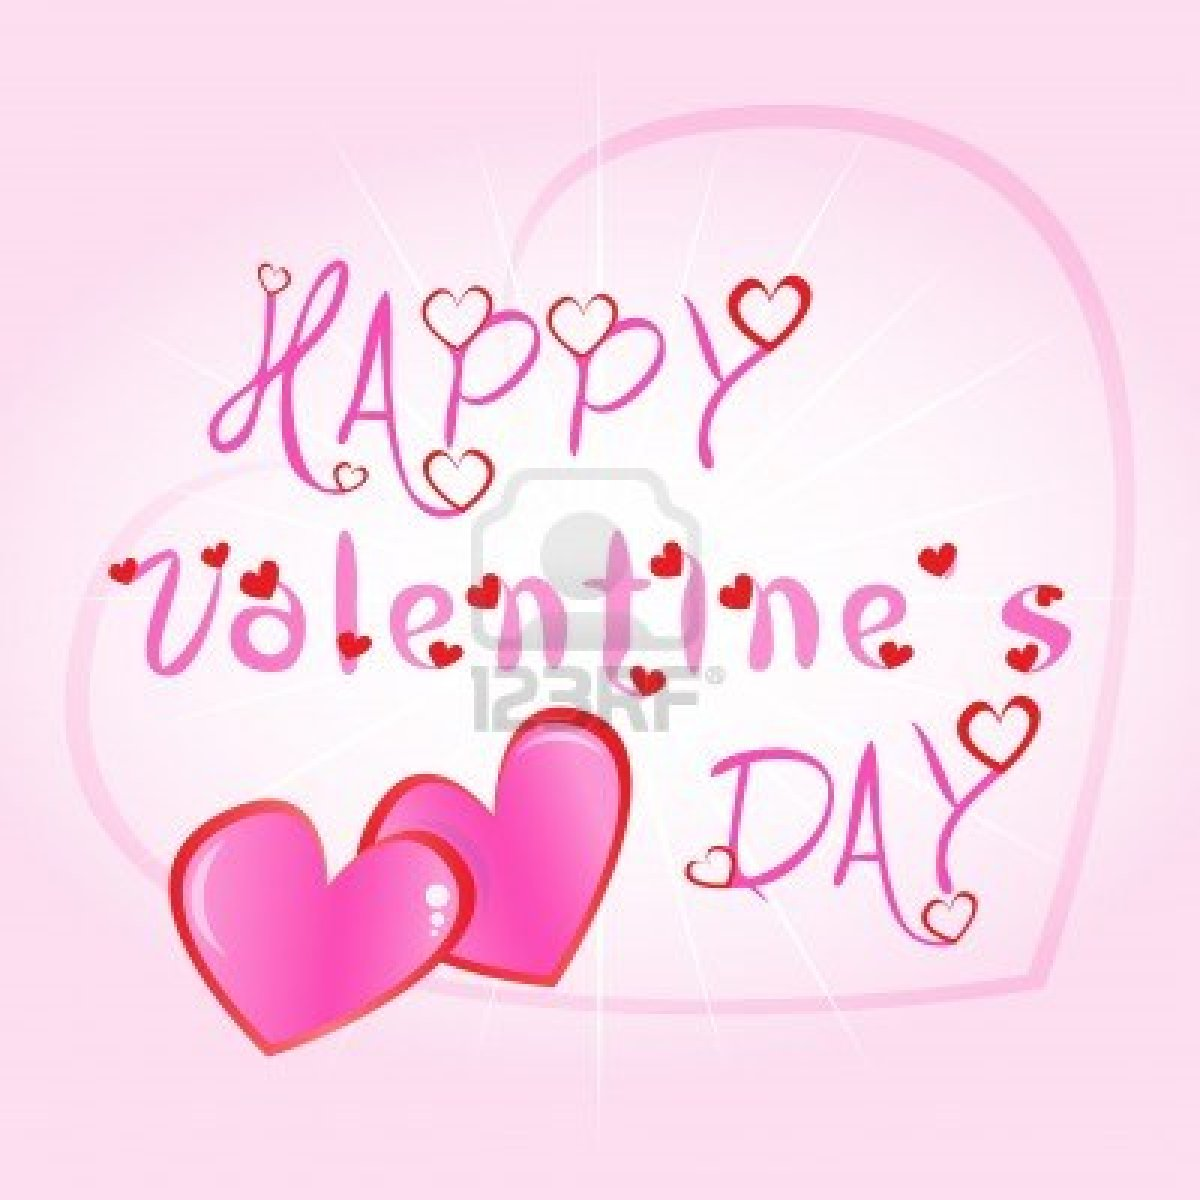 Valentines Day Greeting Cards Pictures And Photos. 1200 x 1200.Valentine's Ideas For Guy